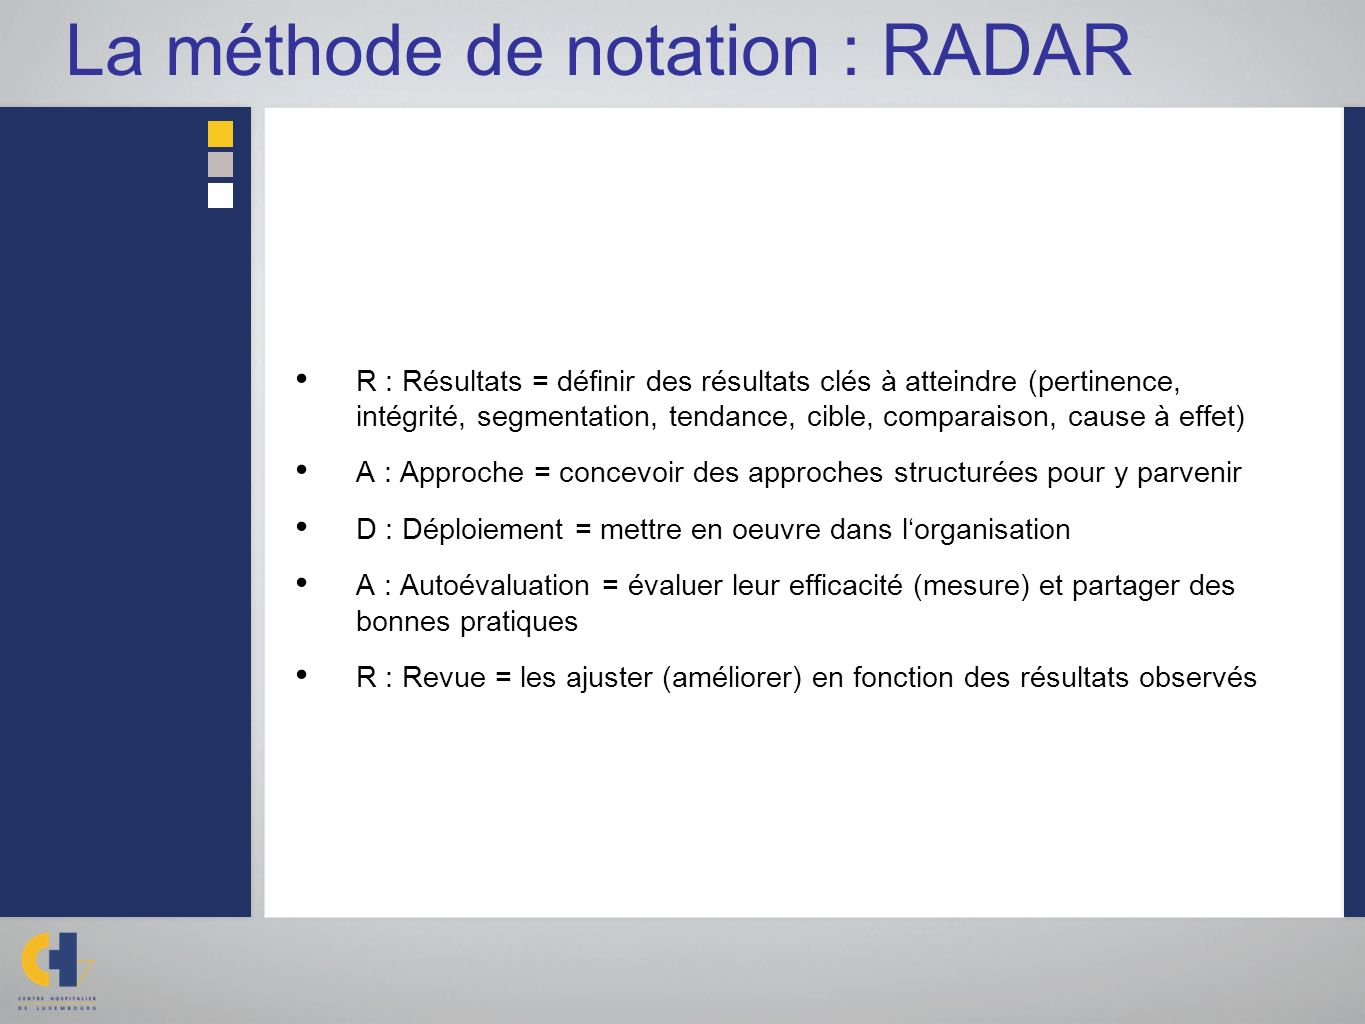 La méthode de notation : RADAR